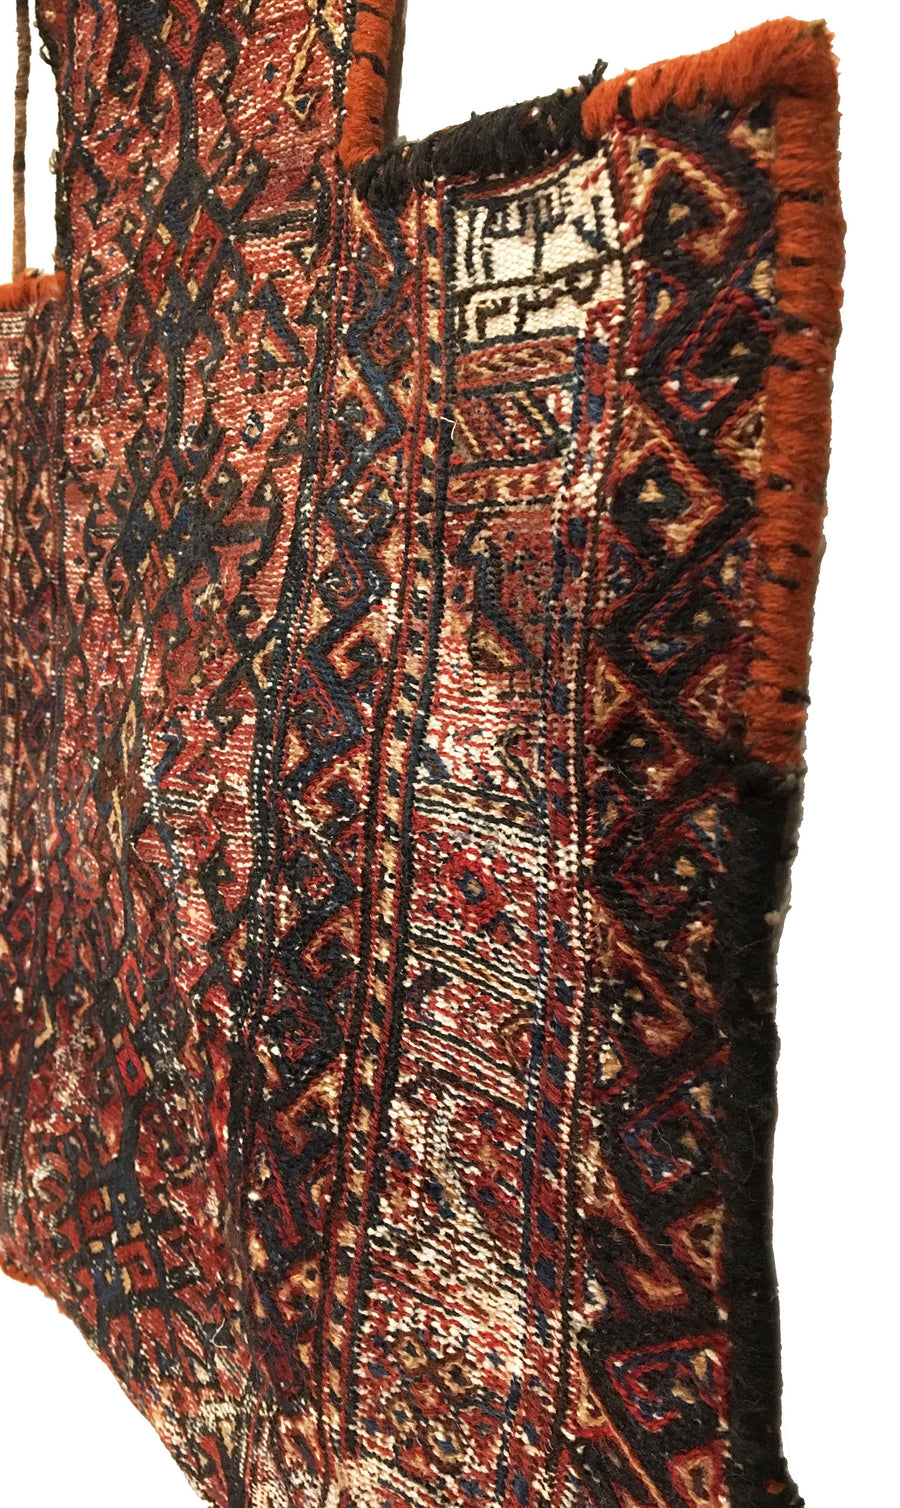 Antique Persian Bakthiari Bag Square Rug 1'5 x 1'6